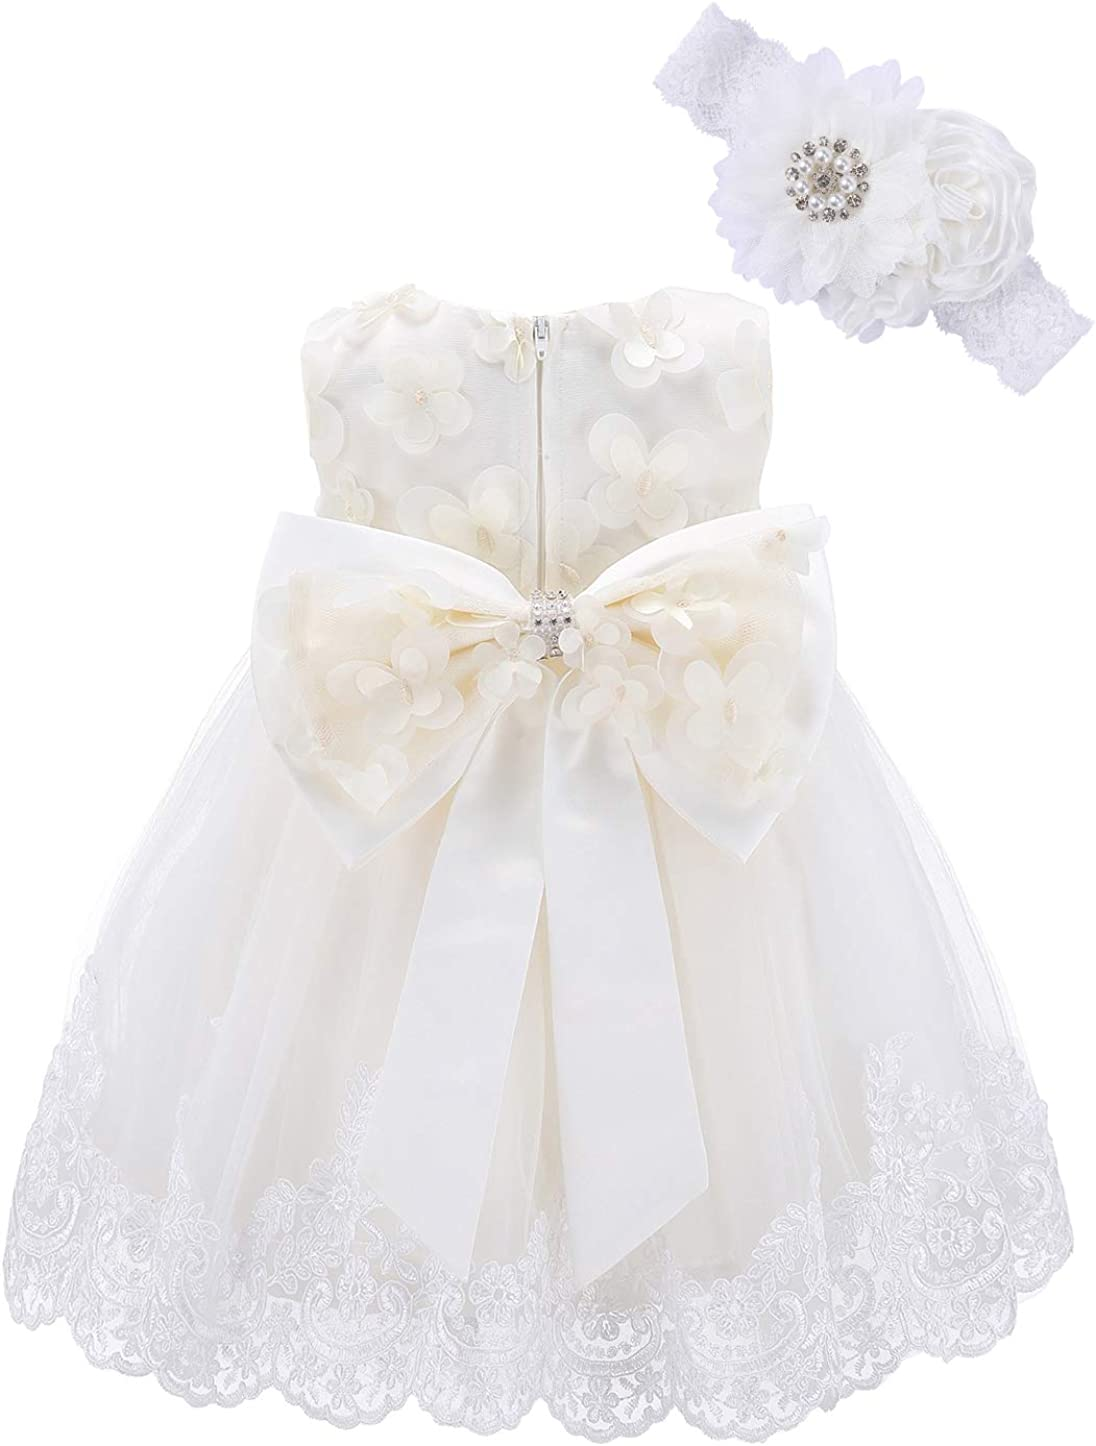 Bow Dream Lace Baby Girl Dress with Headband Butterfly Flower Applique Wedding Party Formal